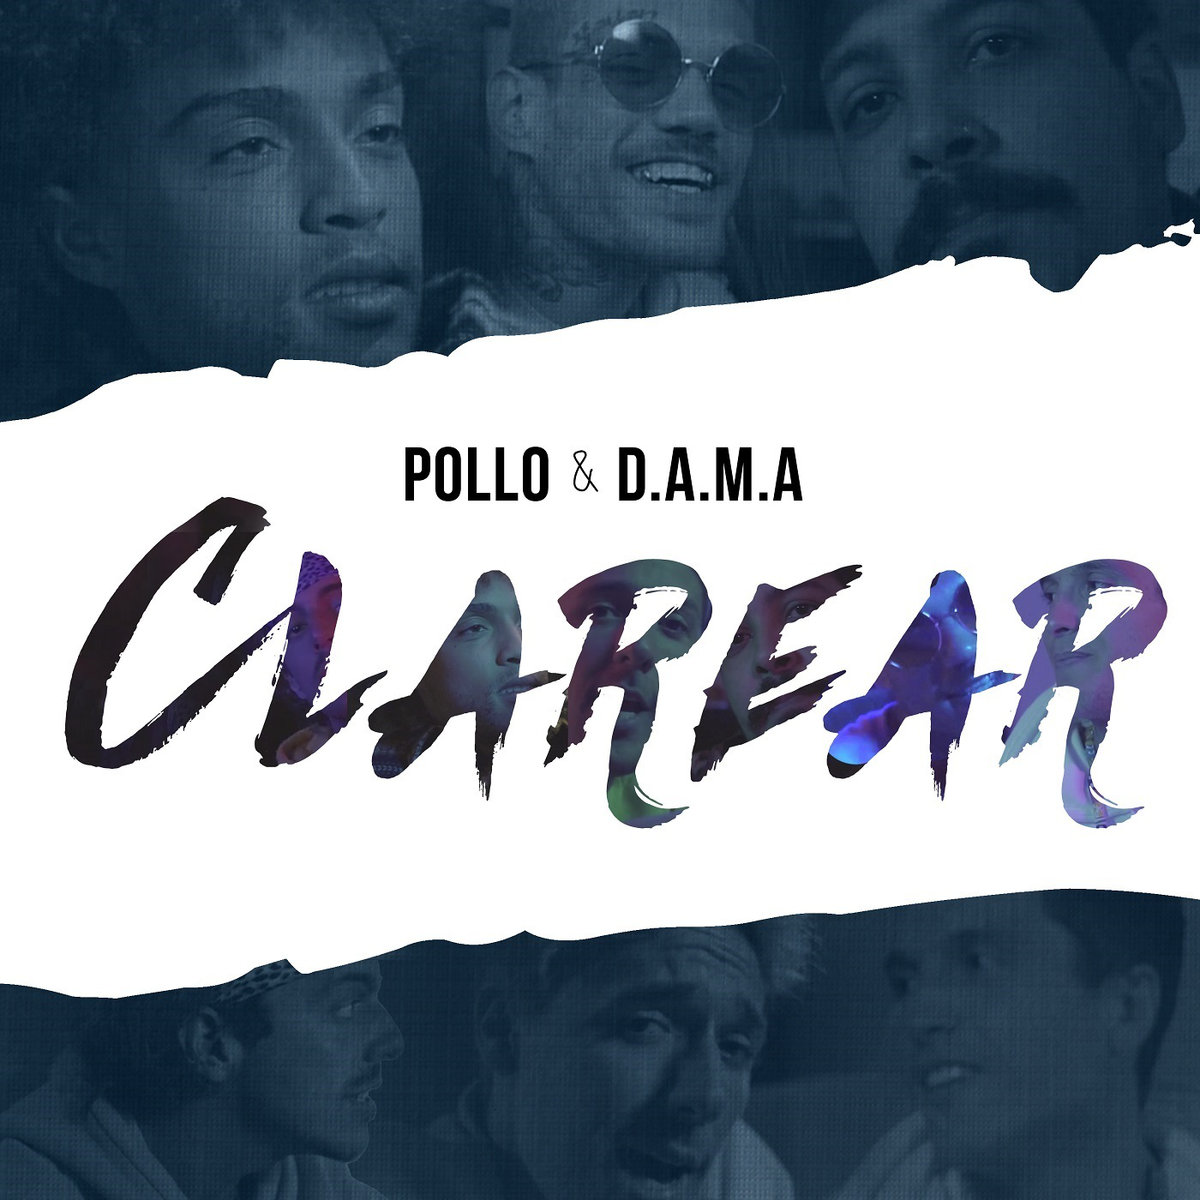 ClarearPollo Ft D.A.M.A.